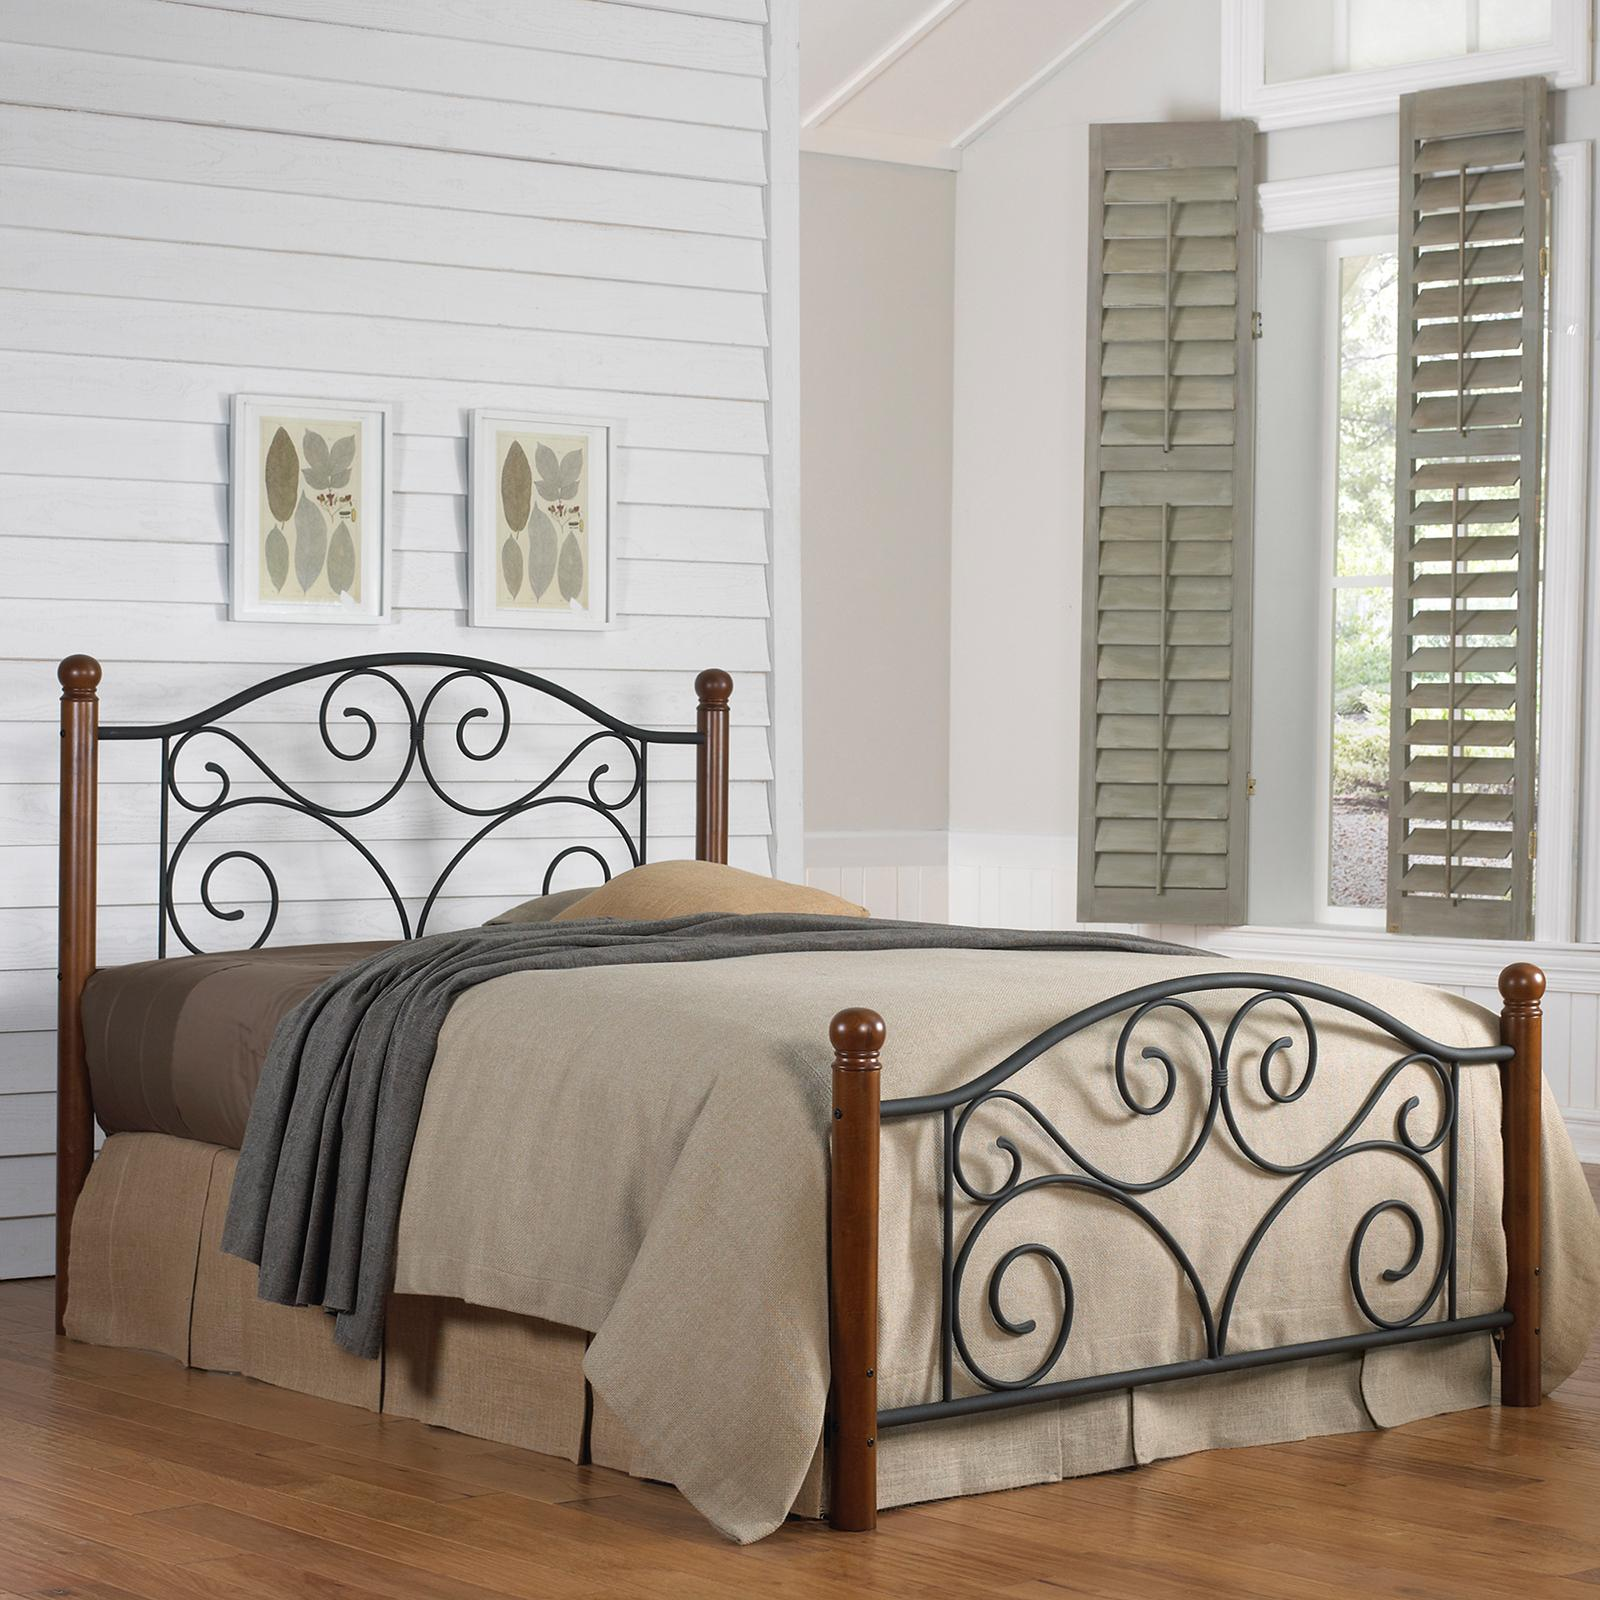 Fashion Bed Group Doral Bed - B92274